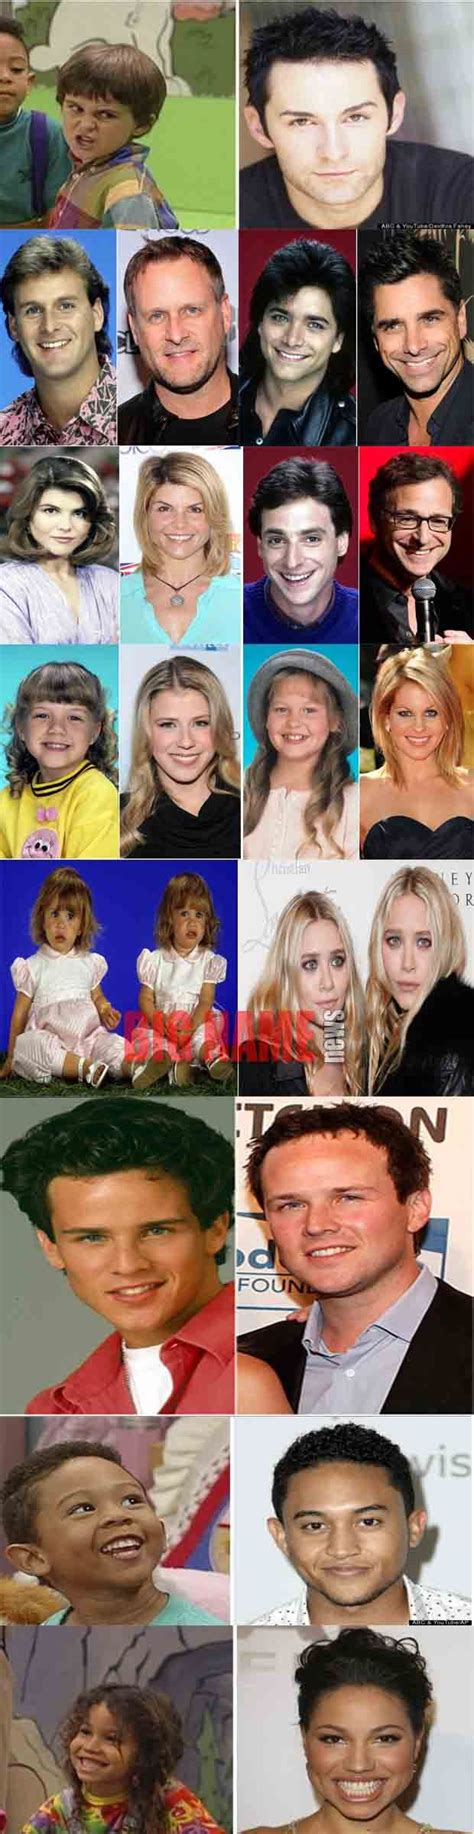 full house characters 17 best ideas about full house cast on pinterest full house full house quotes and